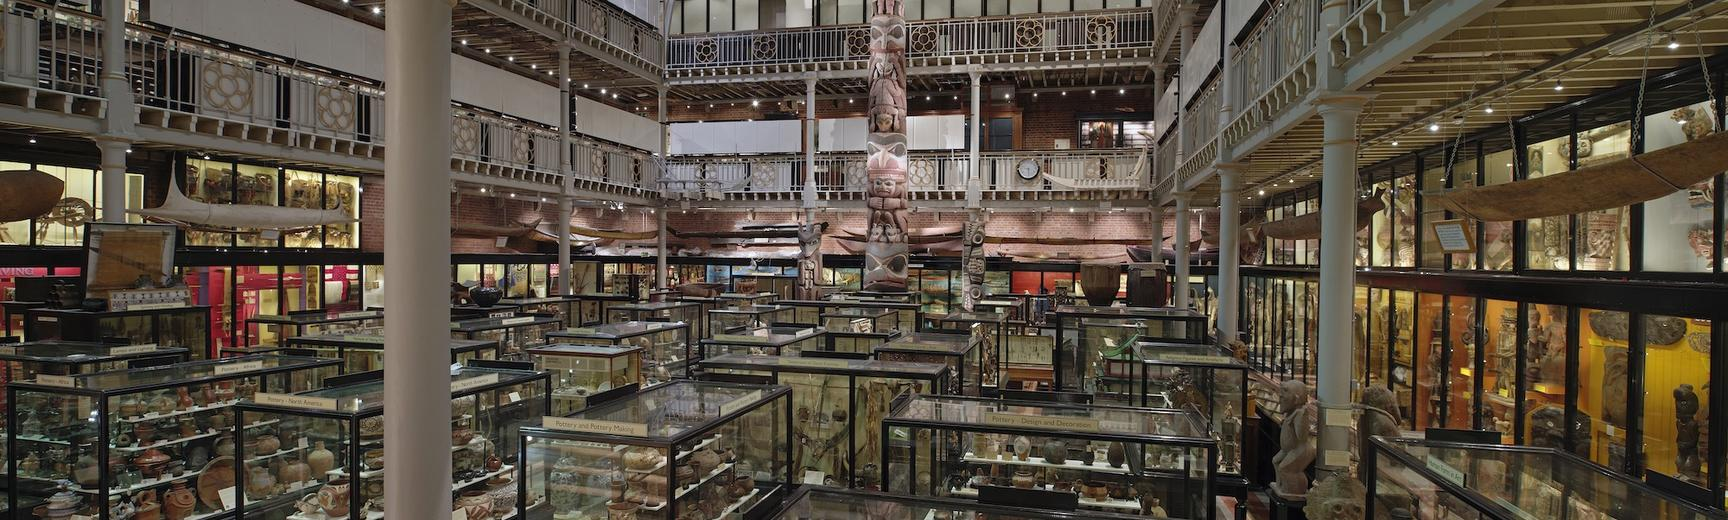 copyright pitt rivers museum university of oxford 2013 17 1